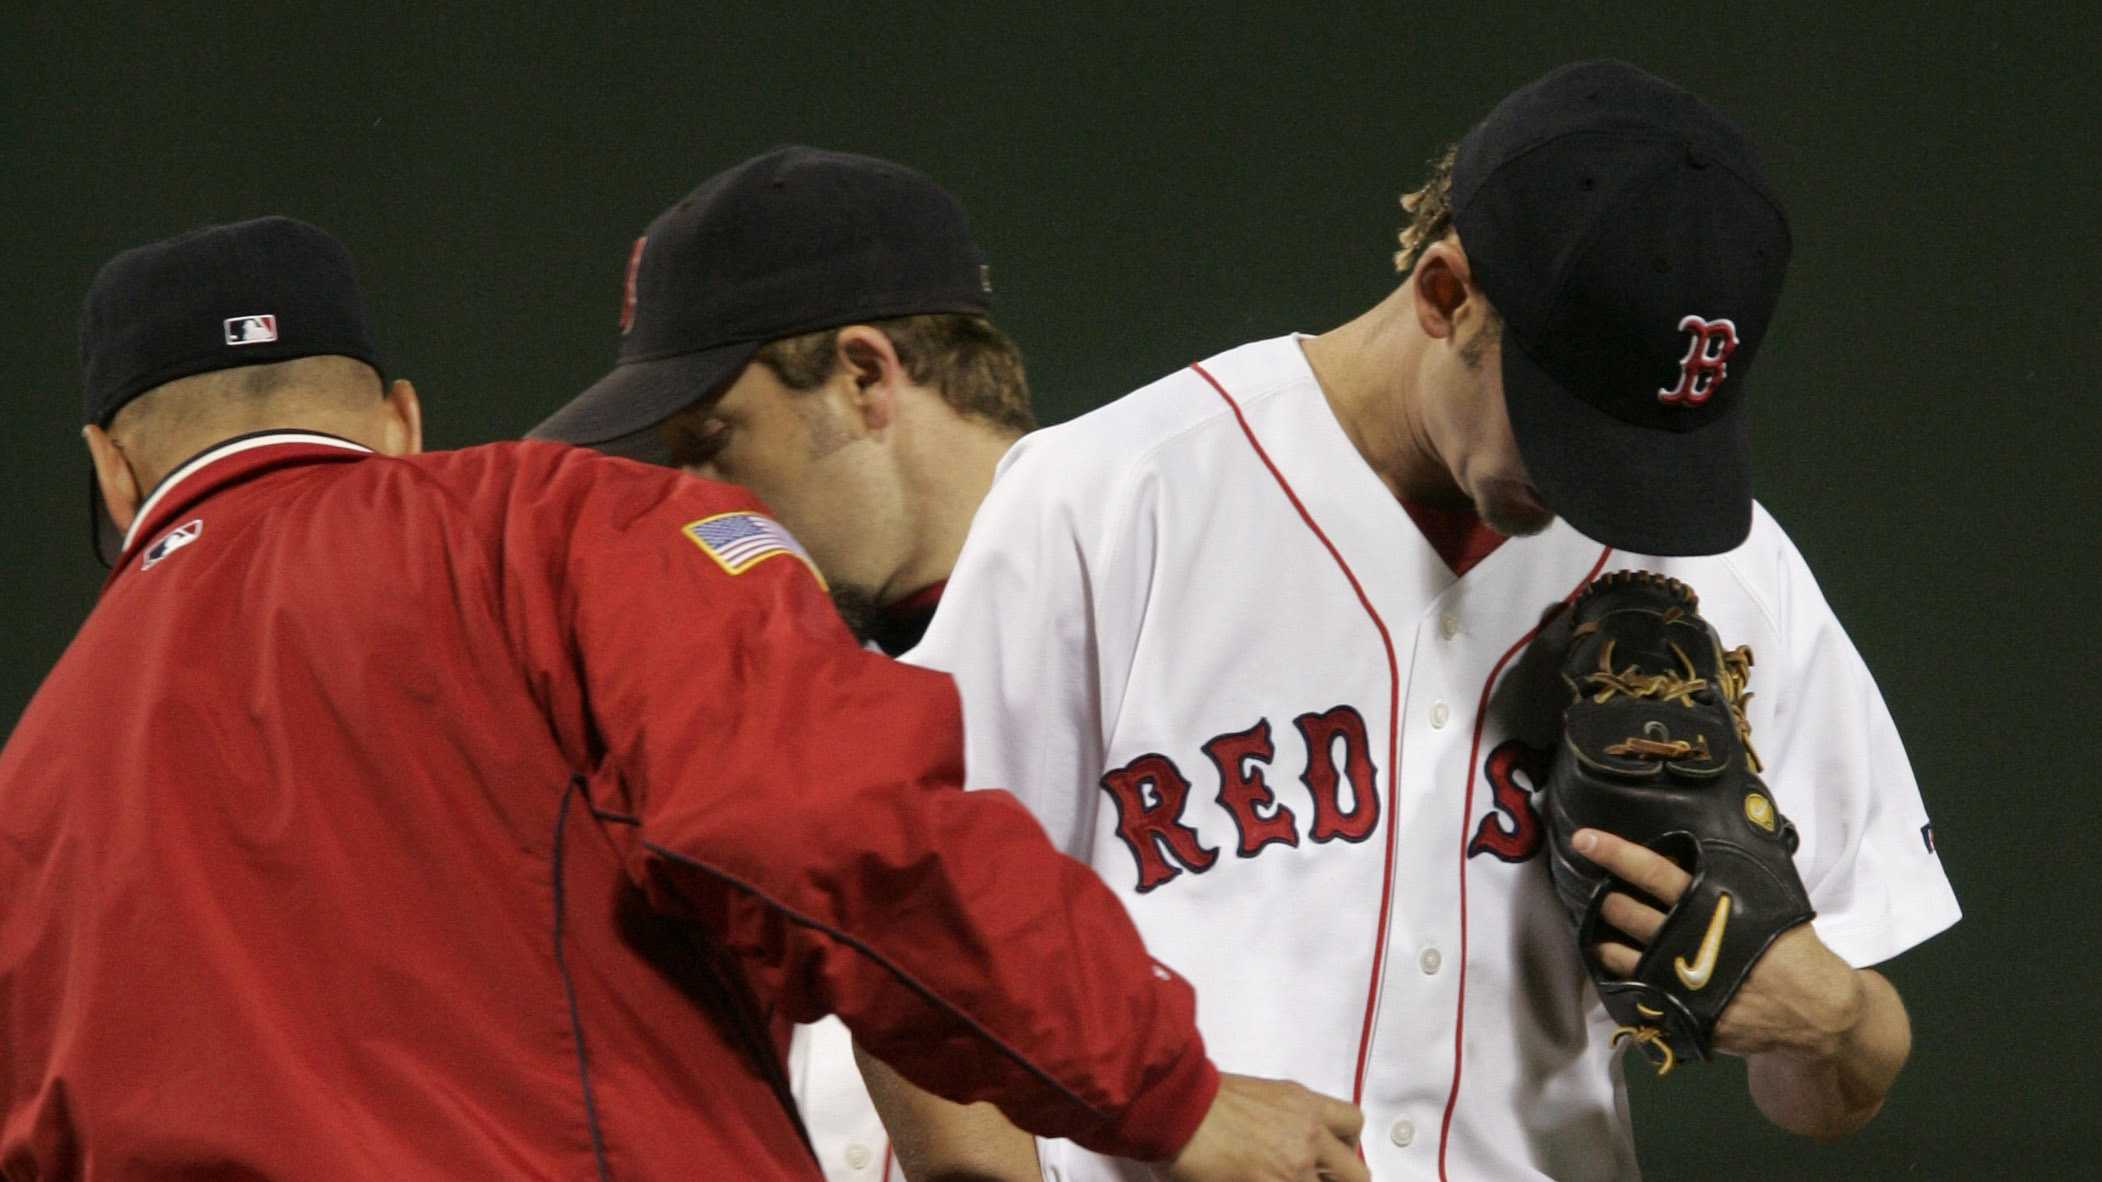 Boston Red Sox starter Bronson Arroyo, right, walks off the mound after being pulled from the game in the third inning by manager Terry Francona, left, at Boston's Fenway Park in game three of the ALCS with the New York Yankees, Saturday Oct. 16, 2004.